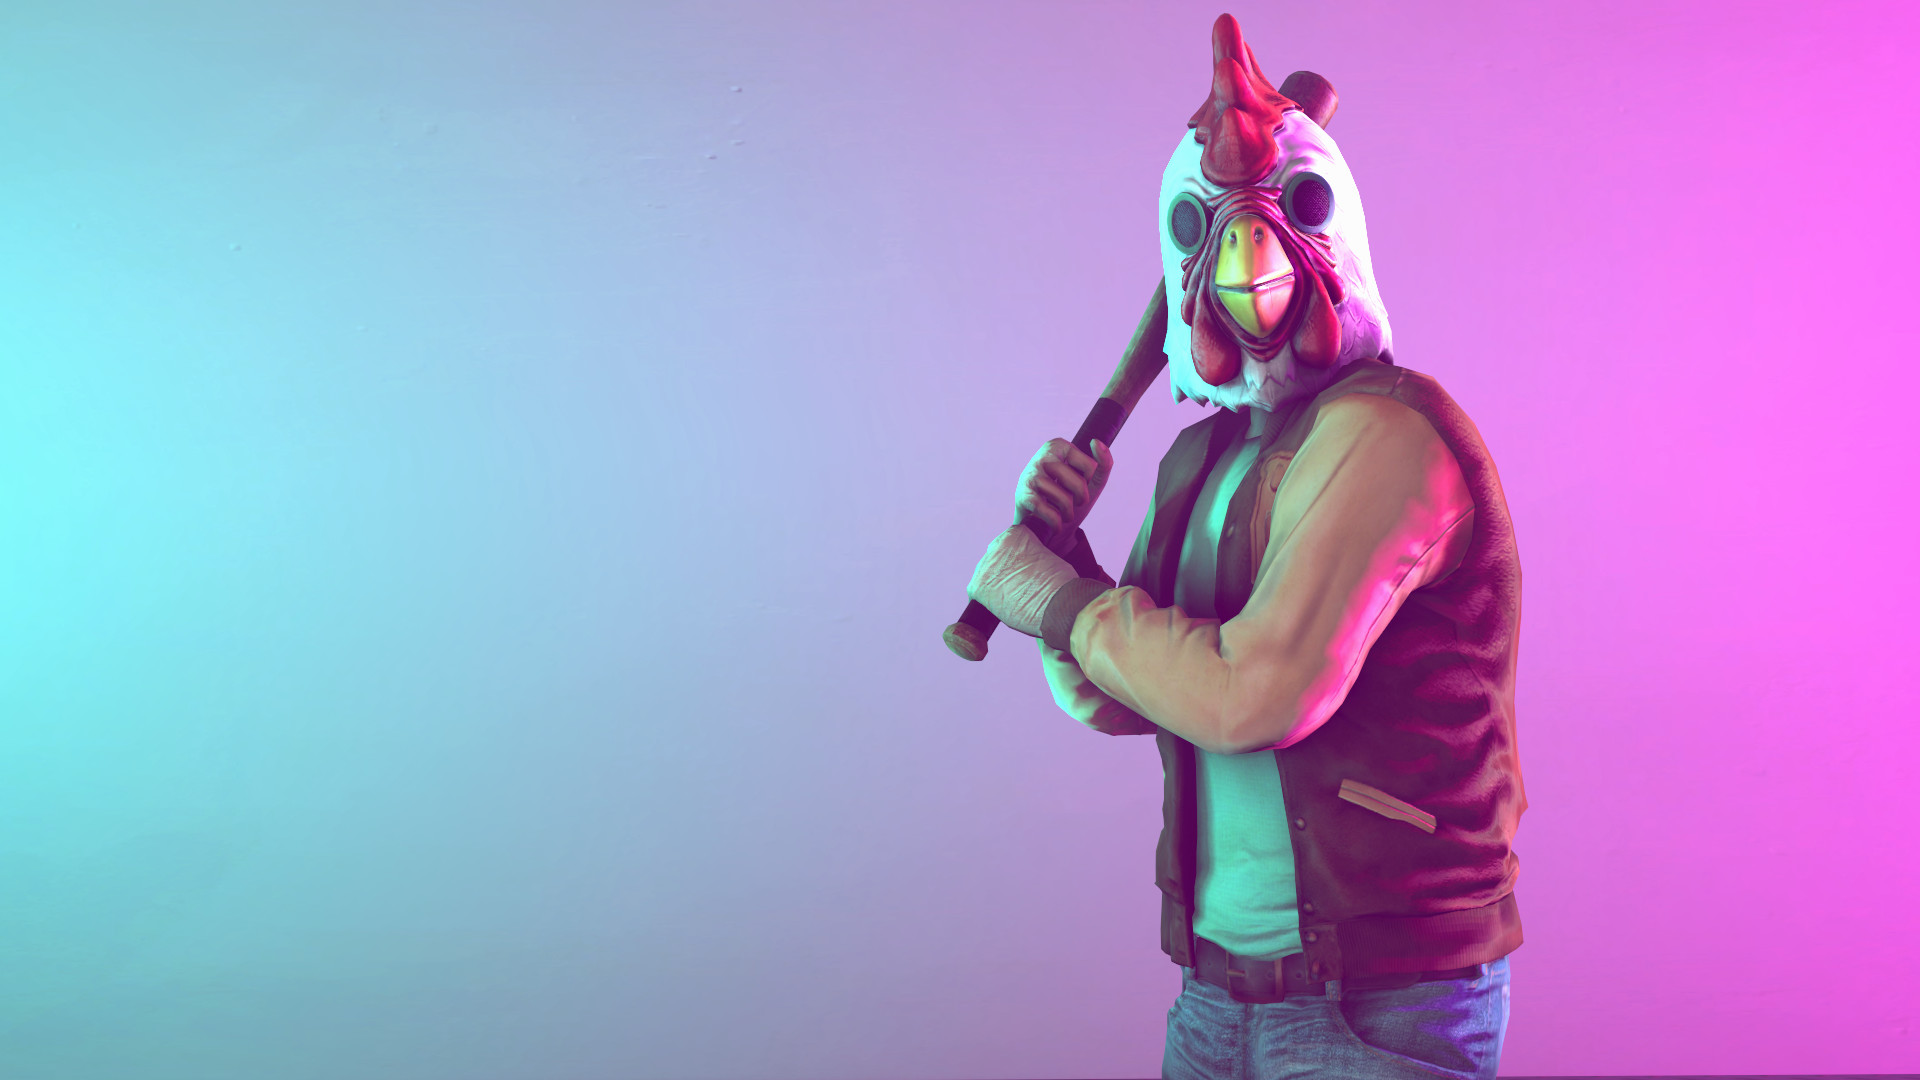 Jacket Hotline Miami Wallpapers 77 Images